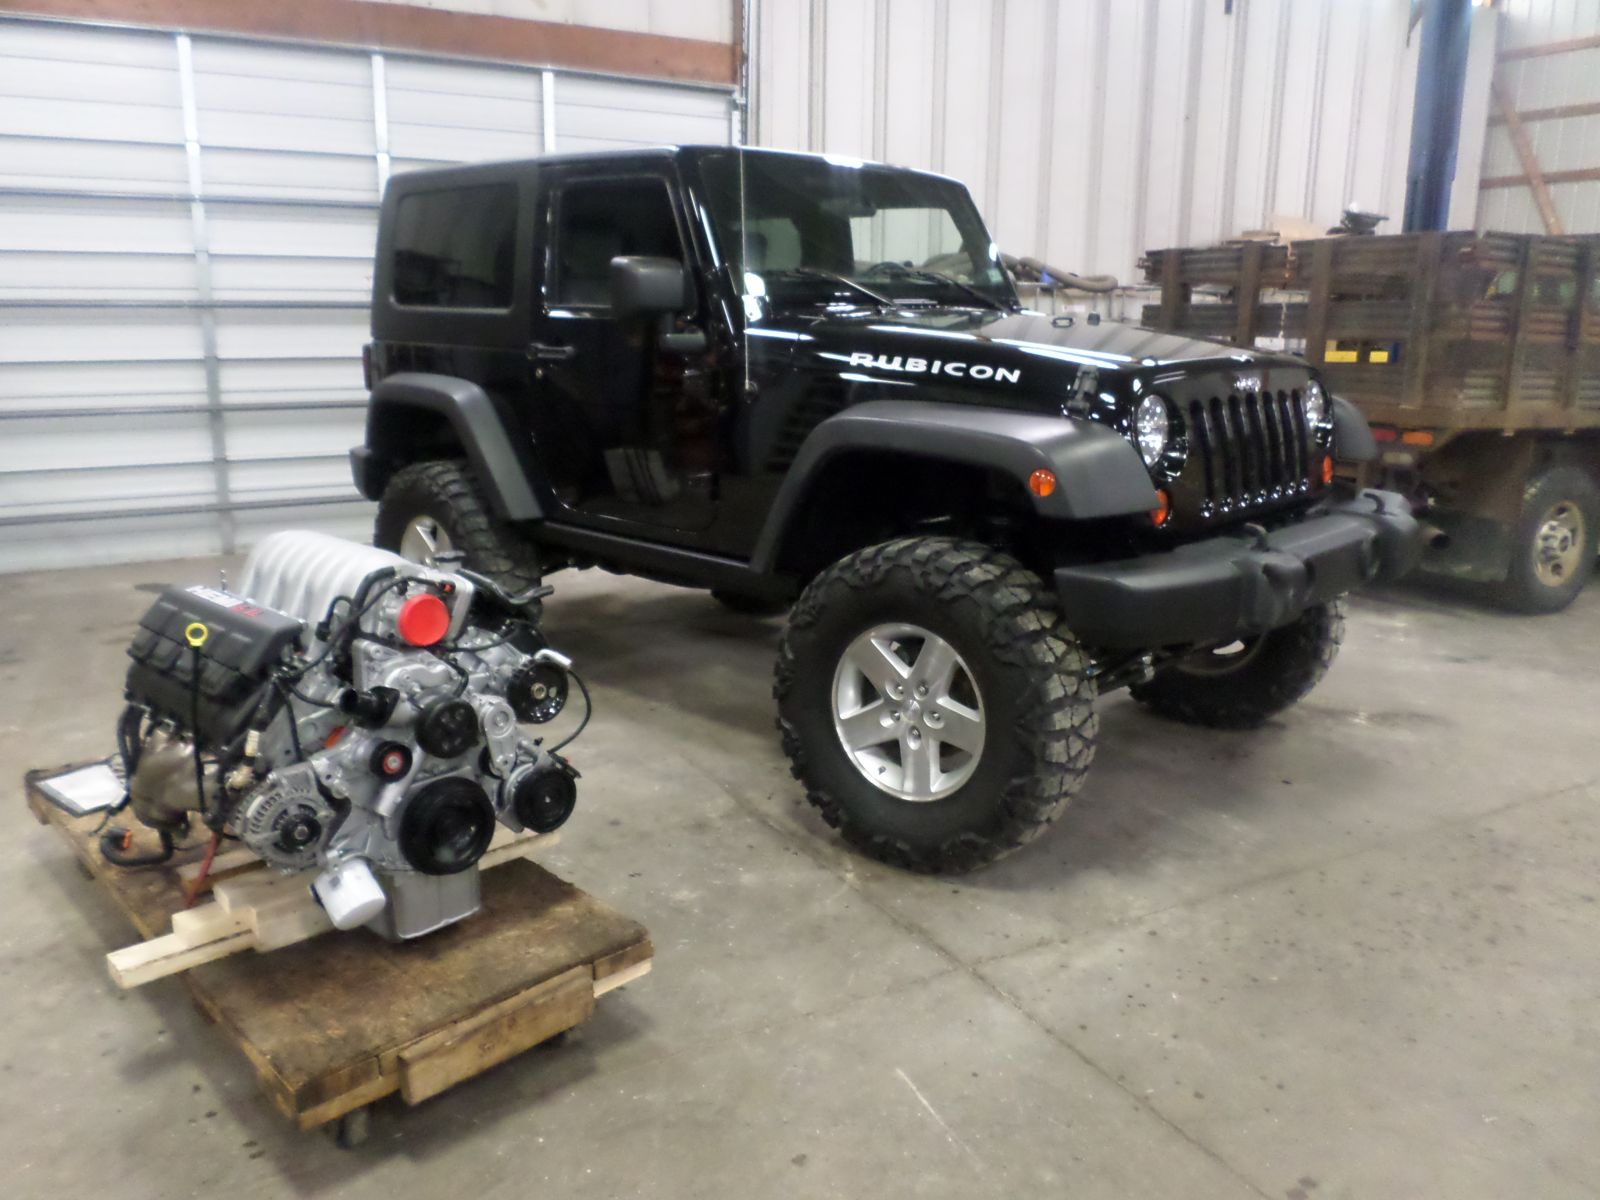 Jeep Rubicon Seats >> 2008 Jeep Rubicon with 6.1L Hemi - Cleveland Power & Performance